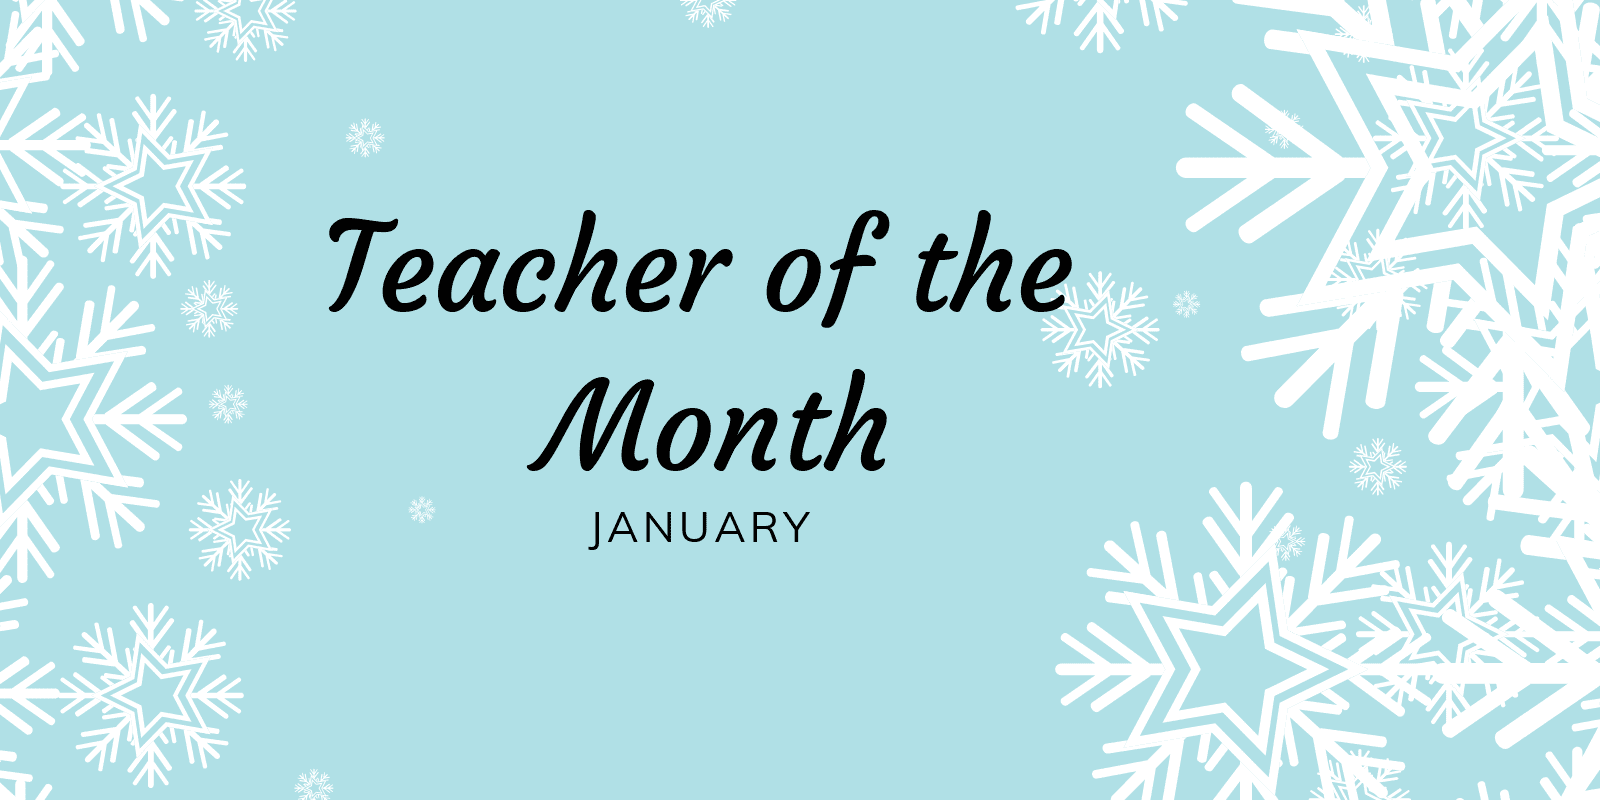 Little Sunshines Playhouse Teacher of the Month January